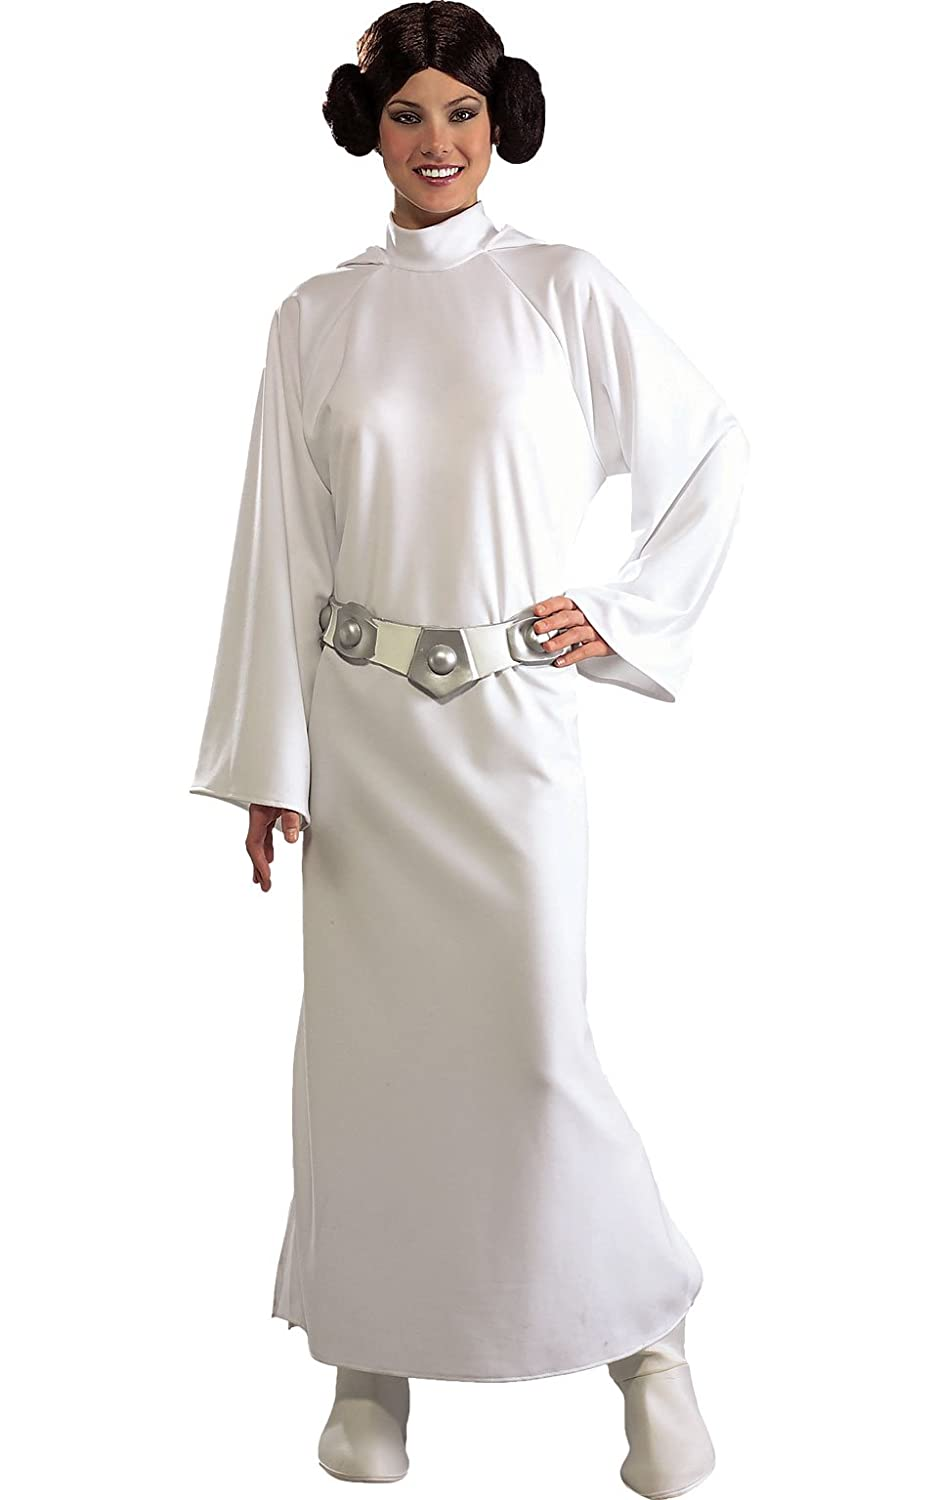 Amazon.com Rubieu0027s Womenu0027s Star Wars Princess Leia Deluxe Costume Clothing  sc 1 st  Amazon.com & Amazon.com: Rubieu0027s Womenu0027s Star Wars Princess Leia Deluxe Costume ...